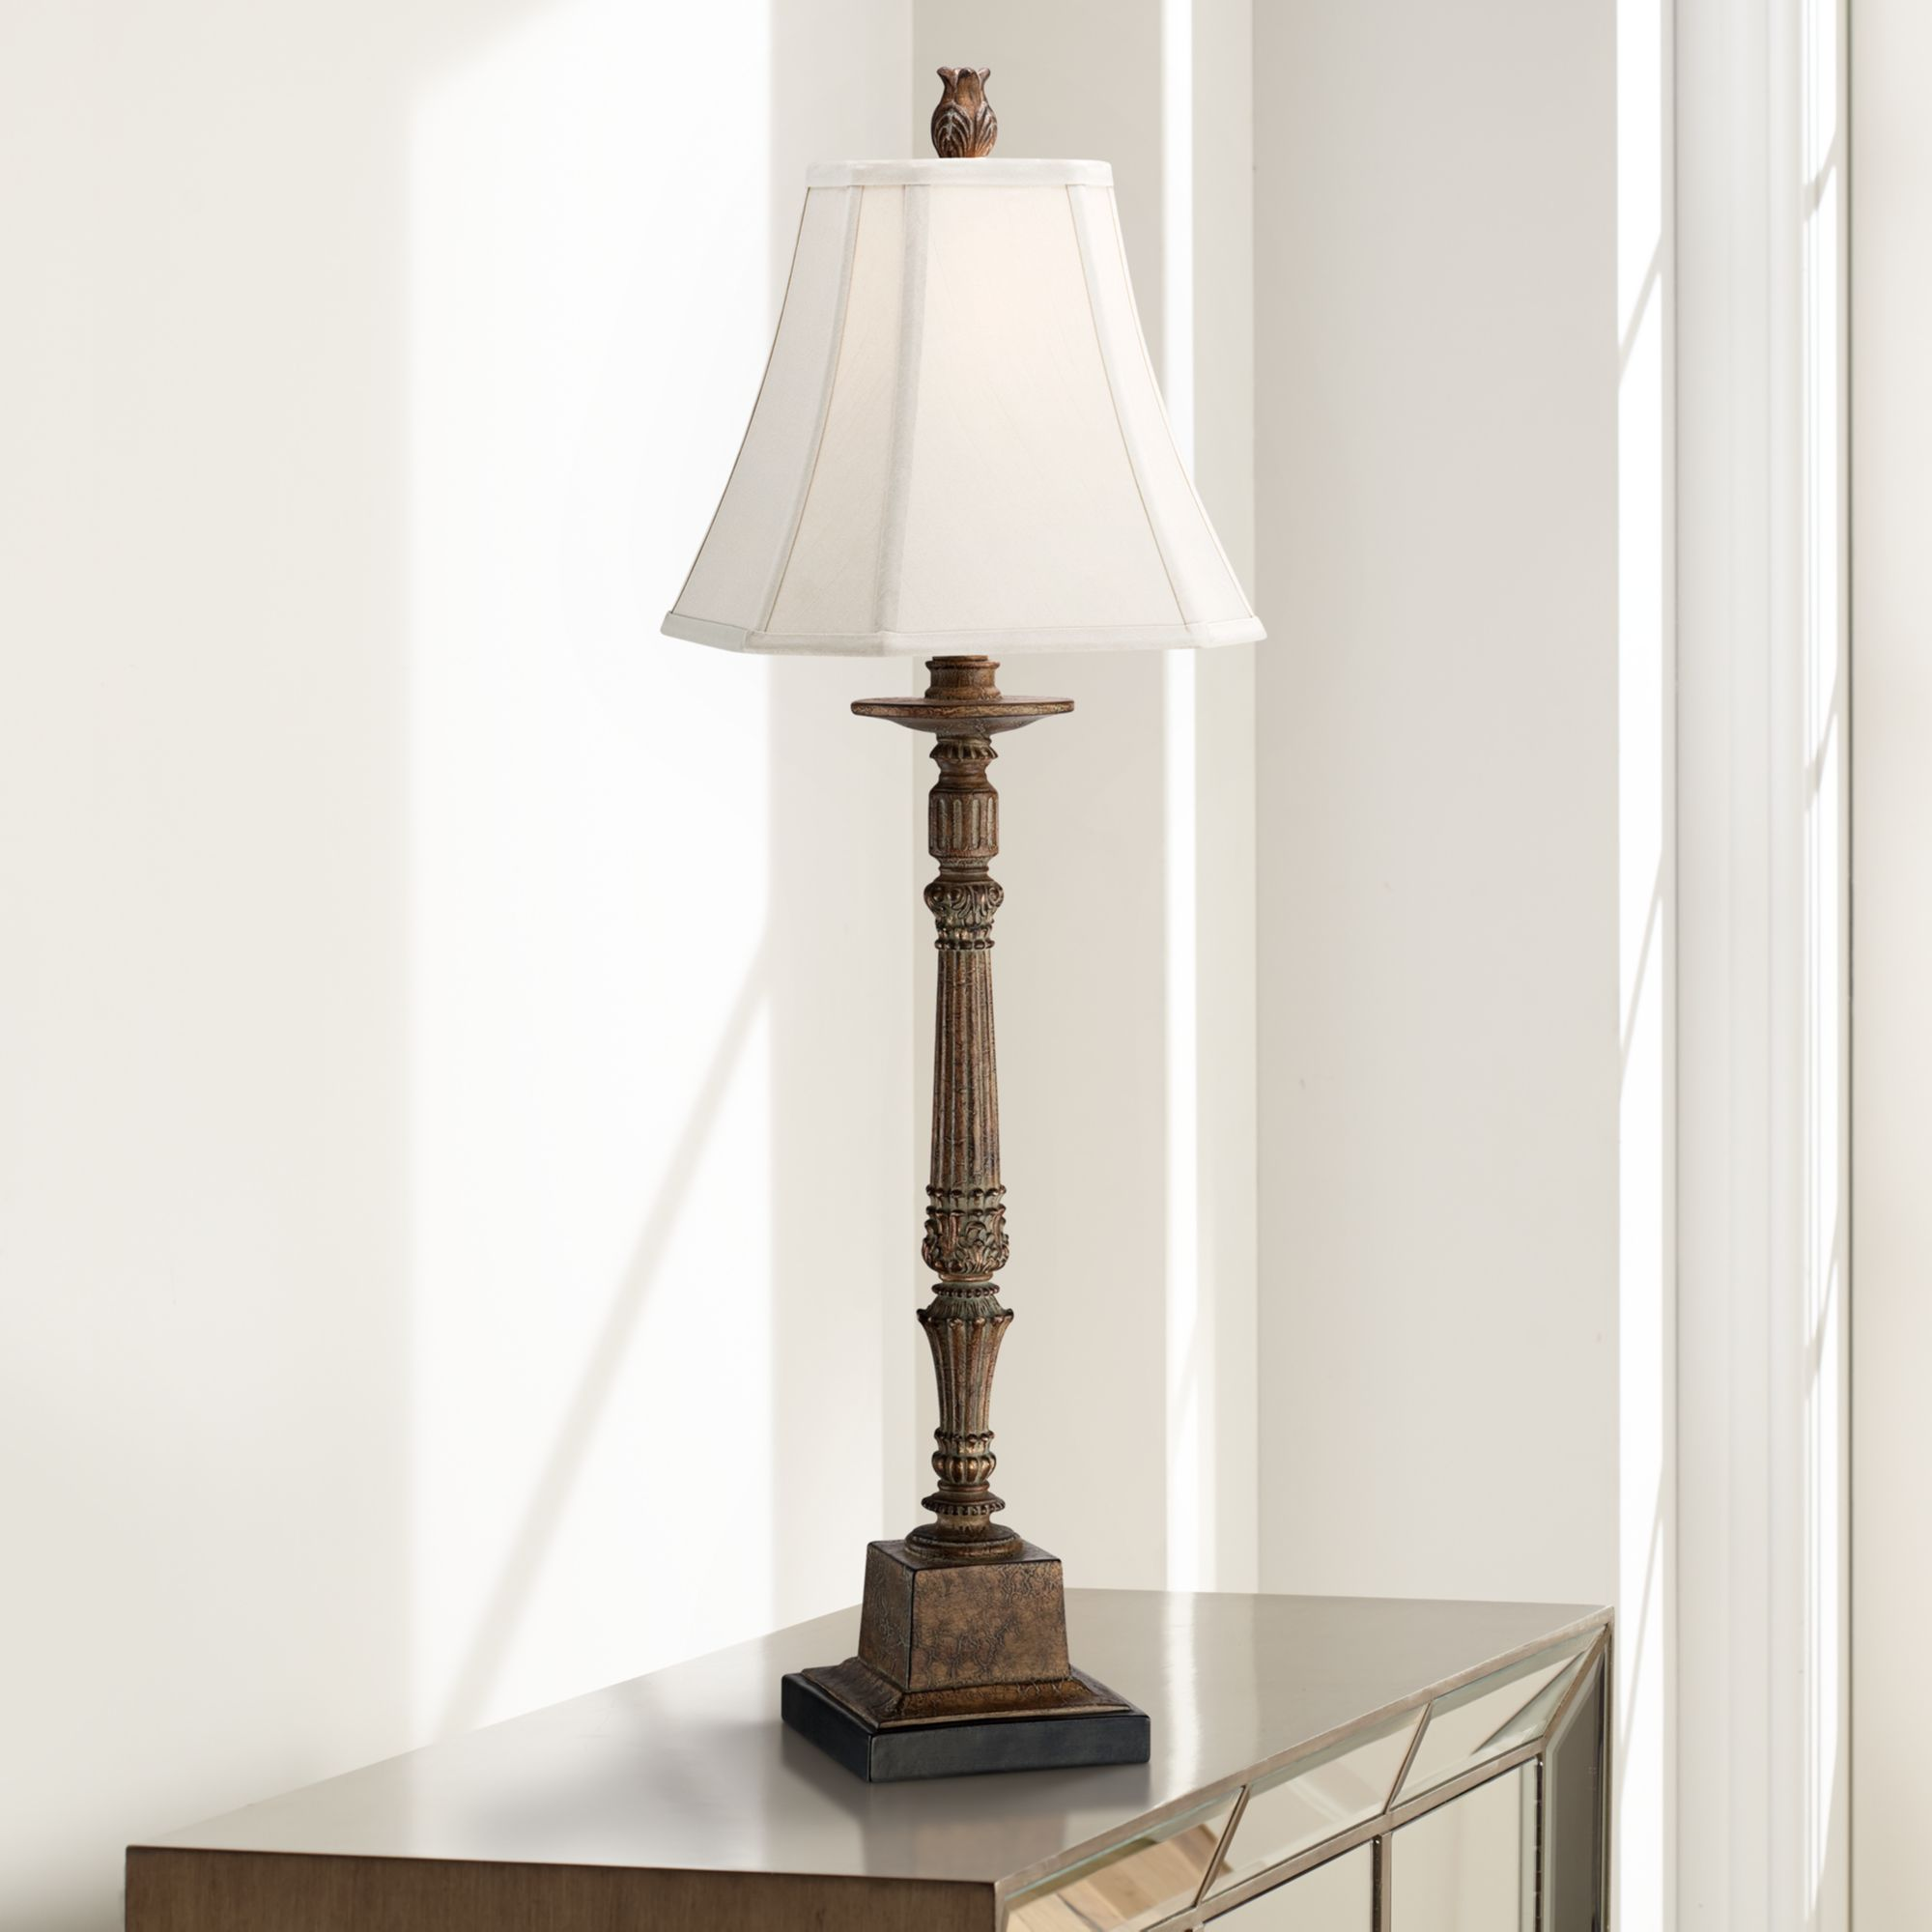 Regency Hill Traditional Console Table Lamp Crackled Brown Candlestick Square Bell Shade for Living Room Family Bedroom Bedside